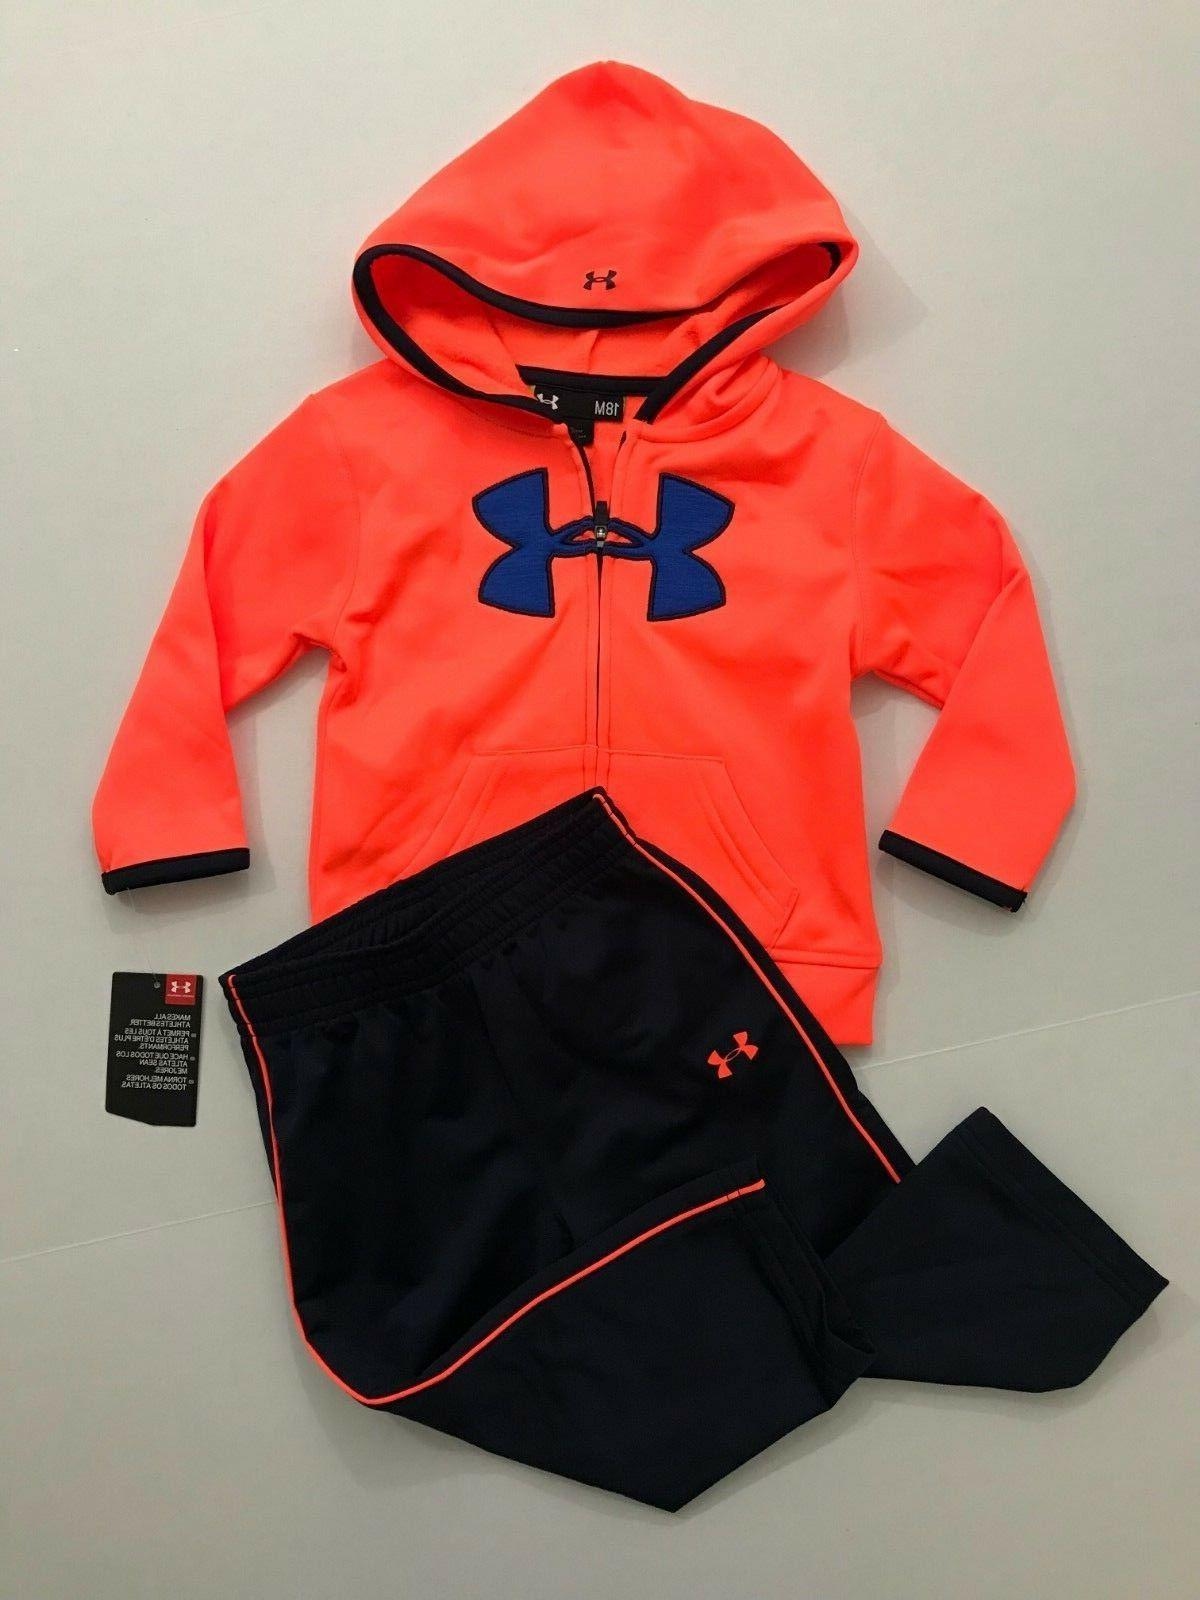 Under Armour NWT Infant Toddler Boys 18 24 Month 2T 3T Track